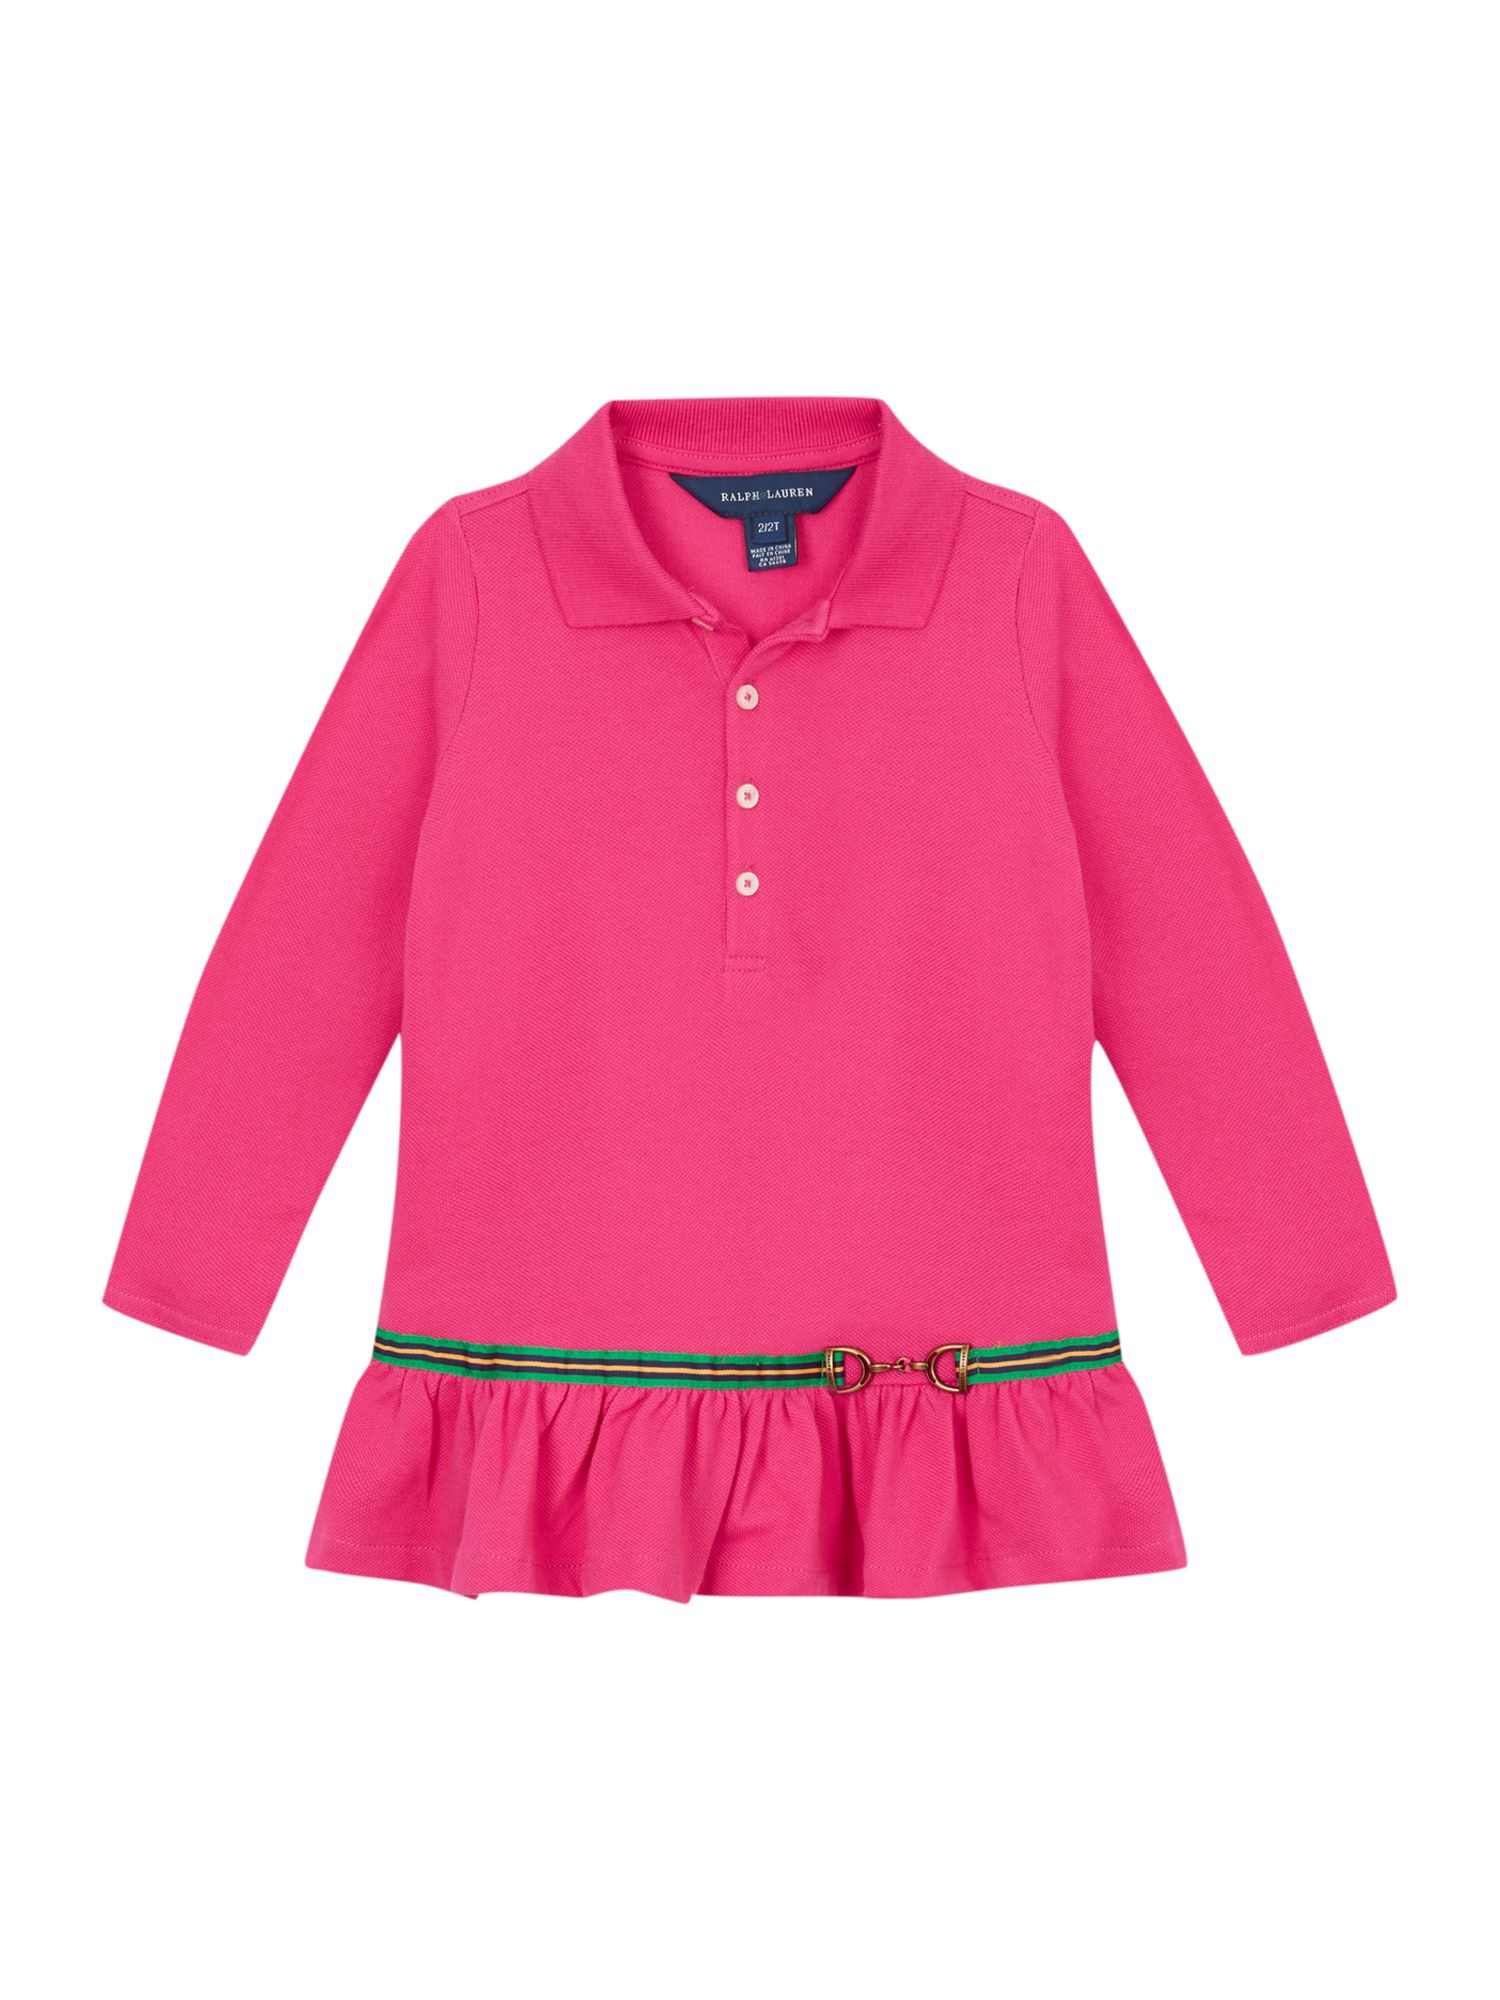 Girls polo dress with ribbon and drop waist